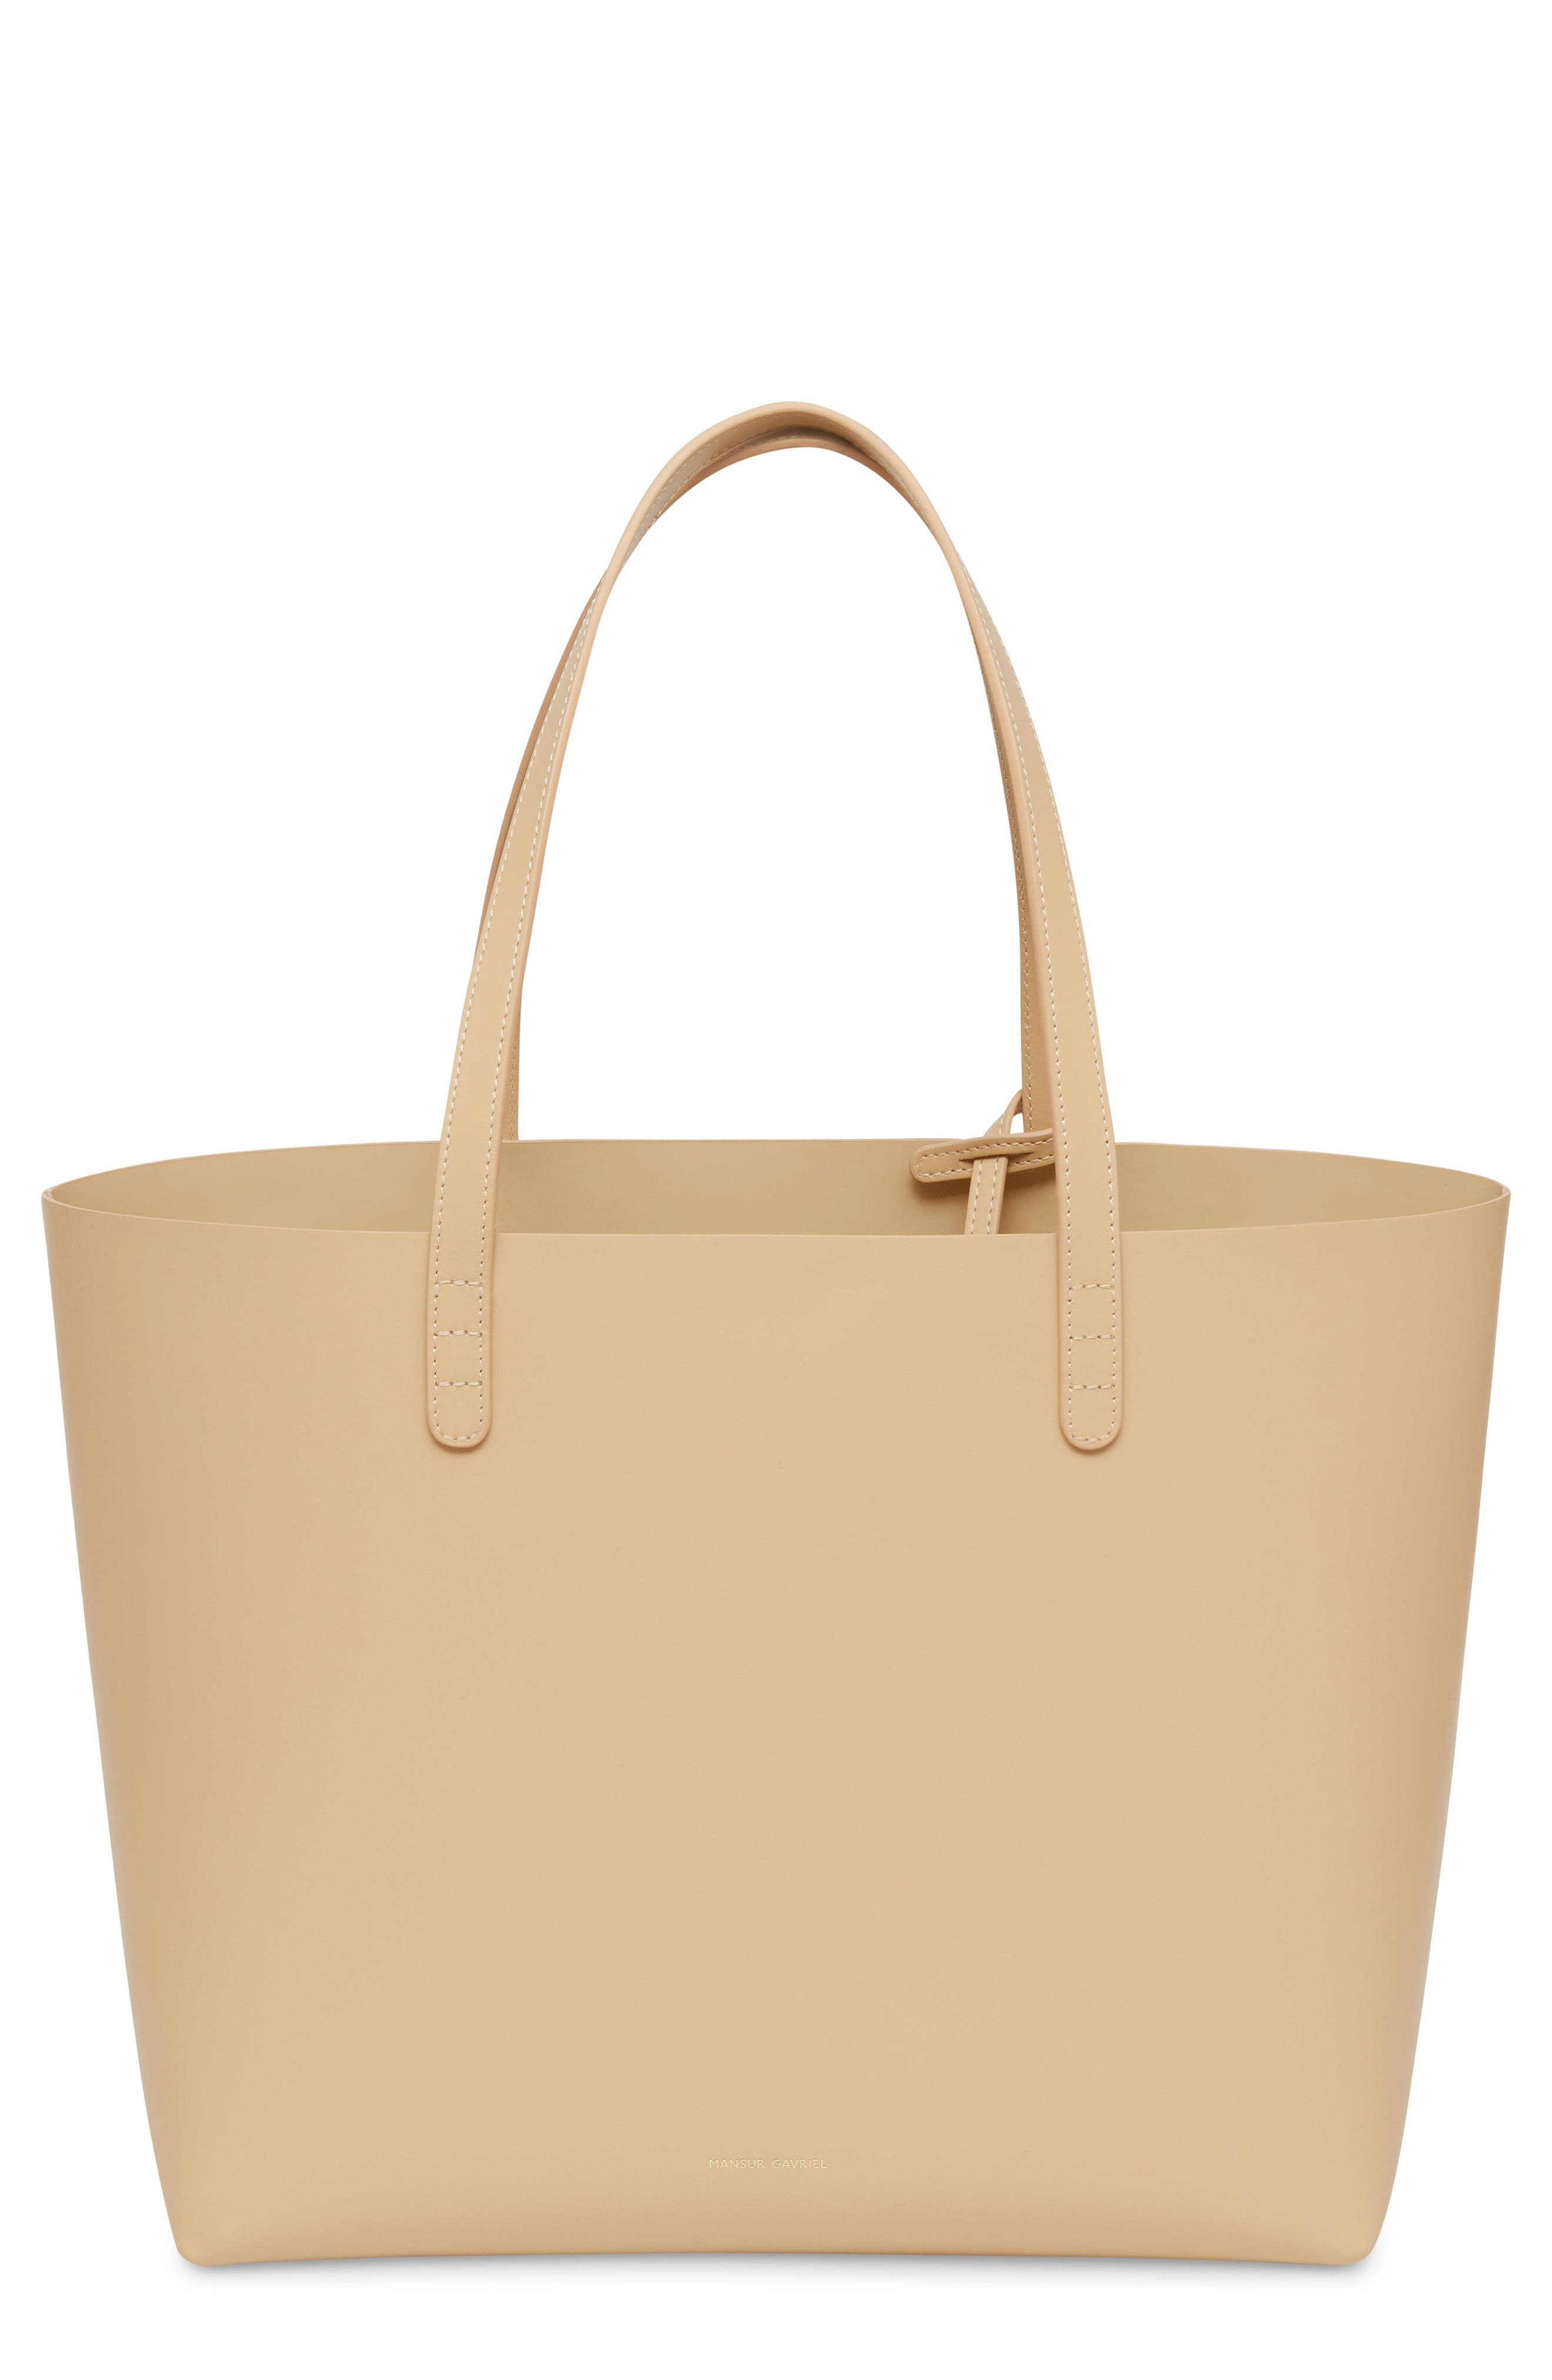 953934b410 Mansur Gavriel Tote Bags for Women  Leather